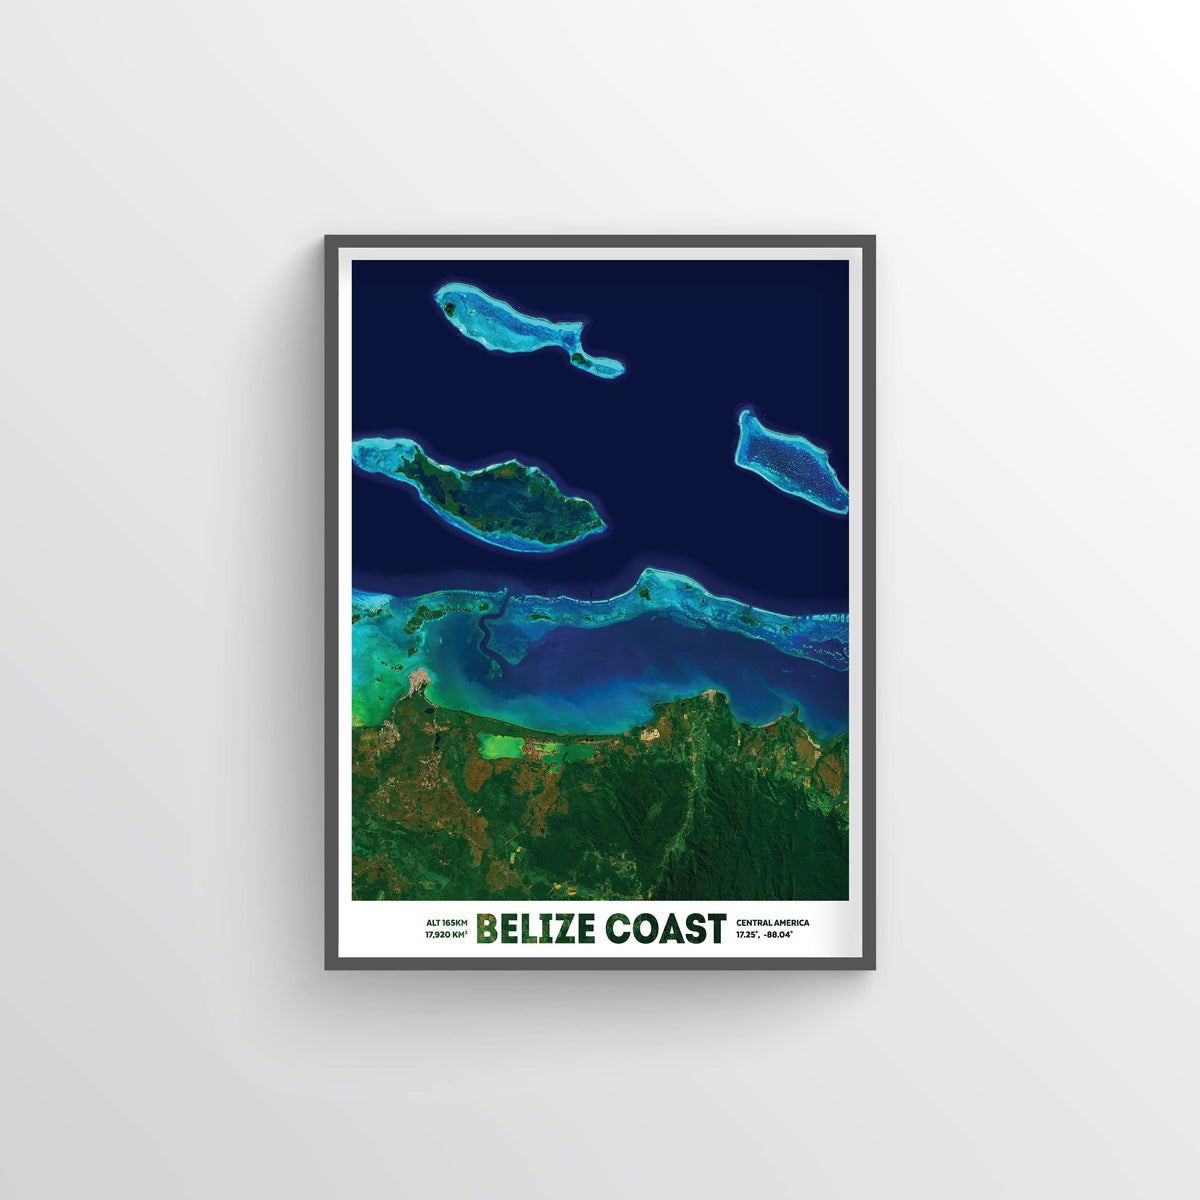 Belize Barrier Reef Earth Photography - Art Print - Point Two Design